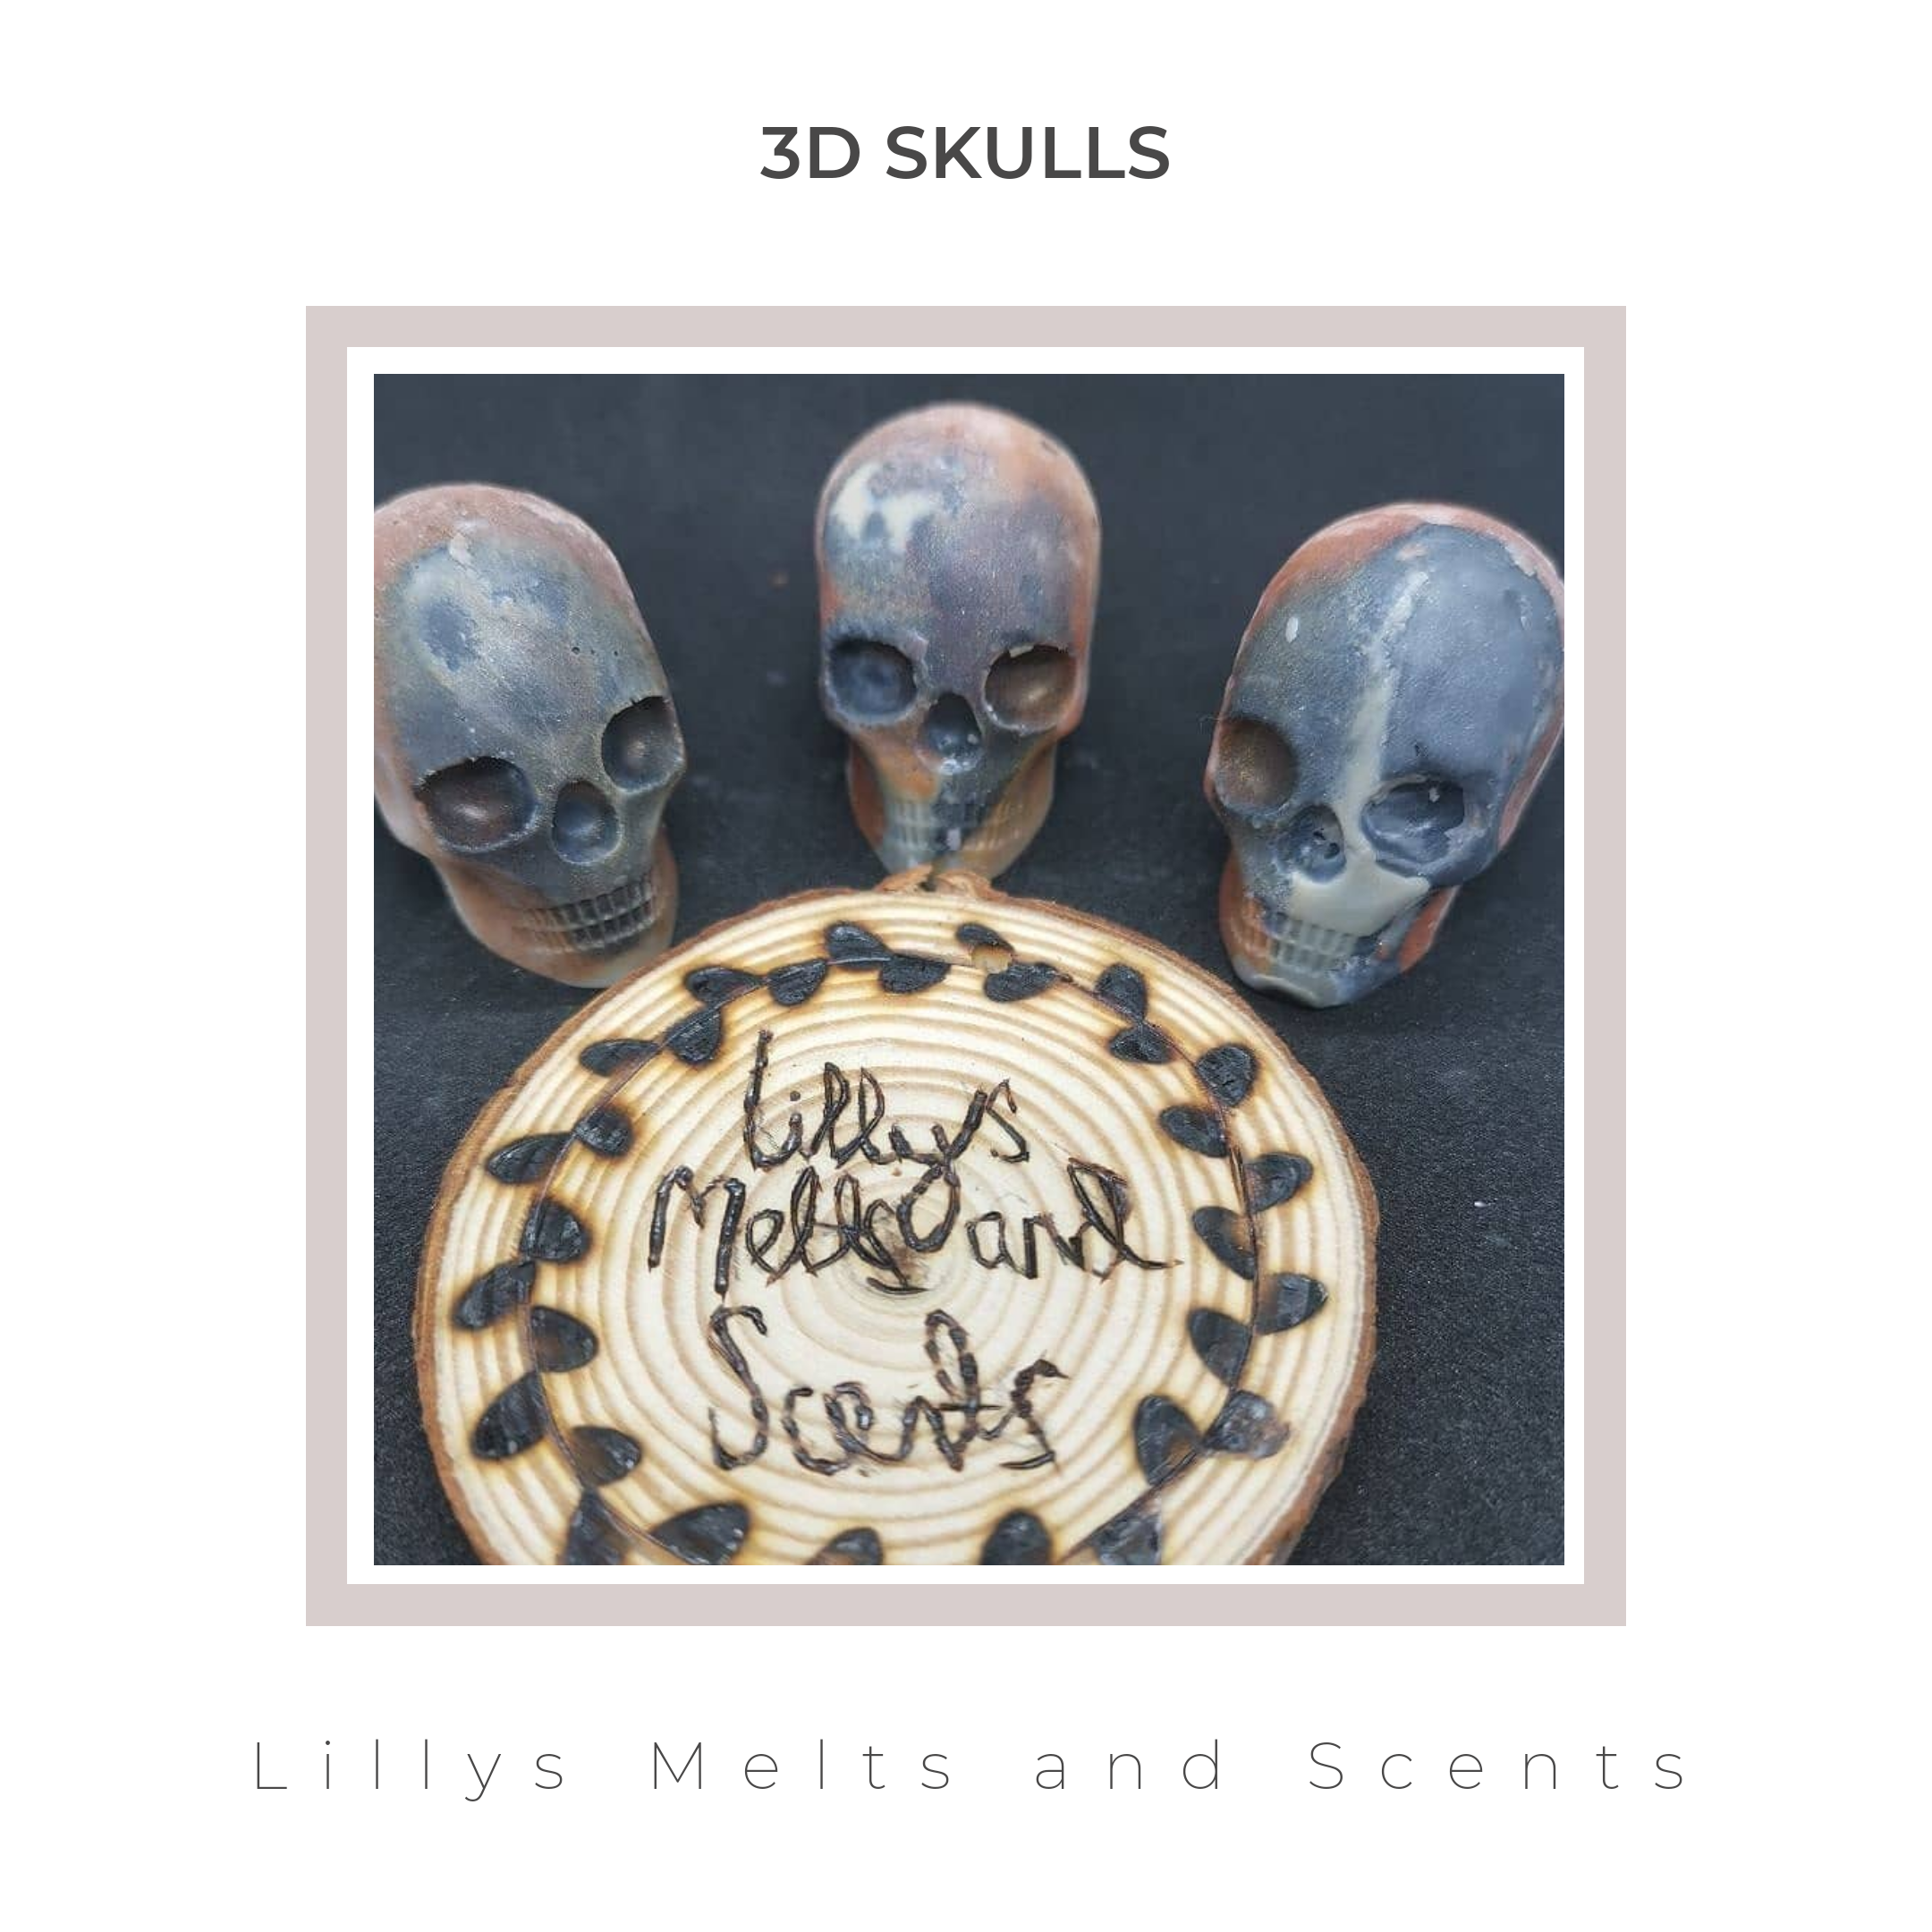 Why not try out spooky 3D skulls